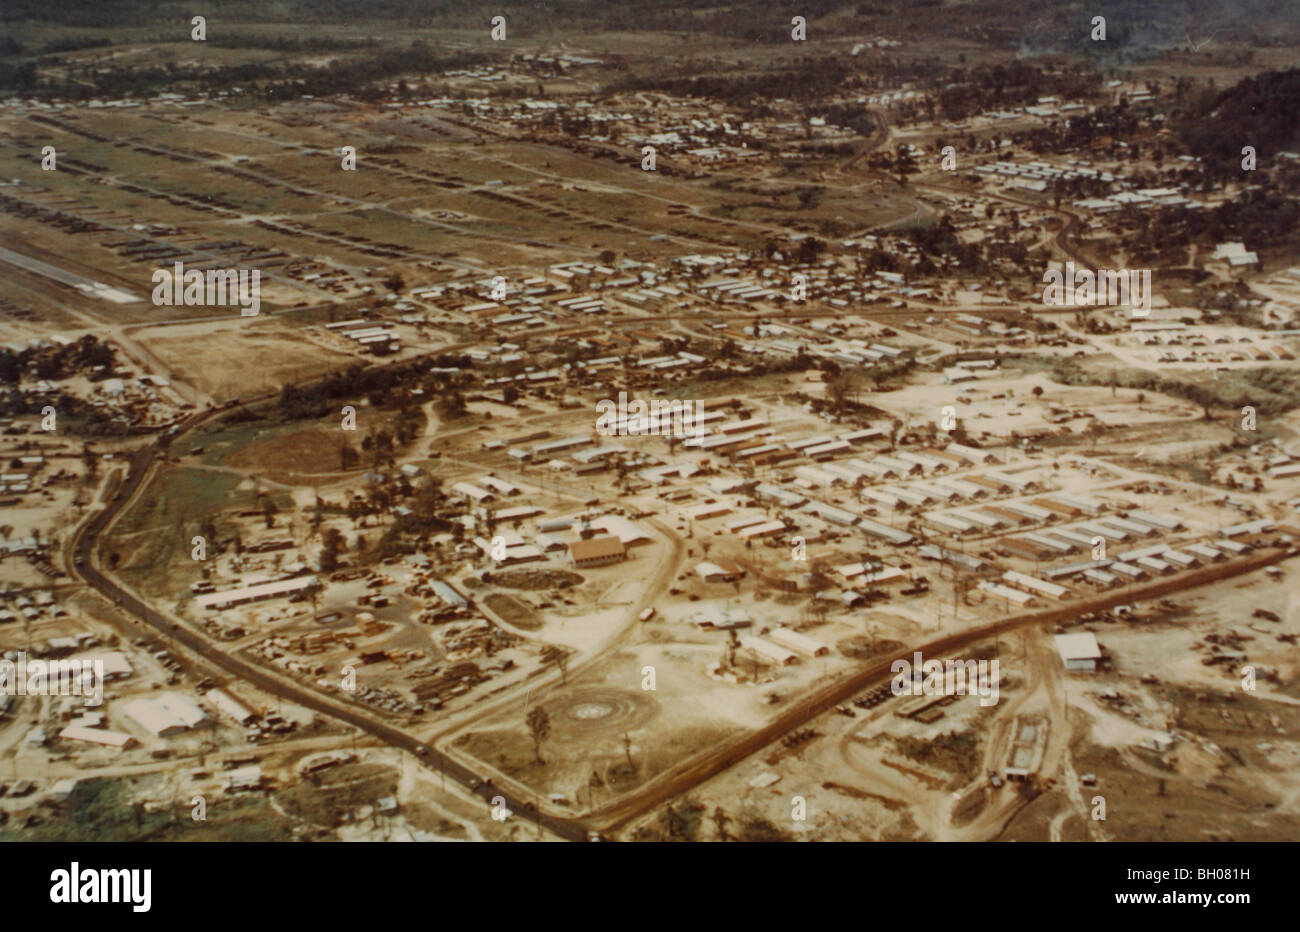 Aerial view of the southern end of the catonment of the 1st Cavalry Division at An Khe. - Stock Image